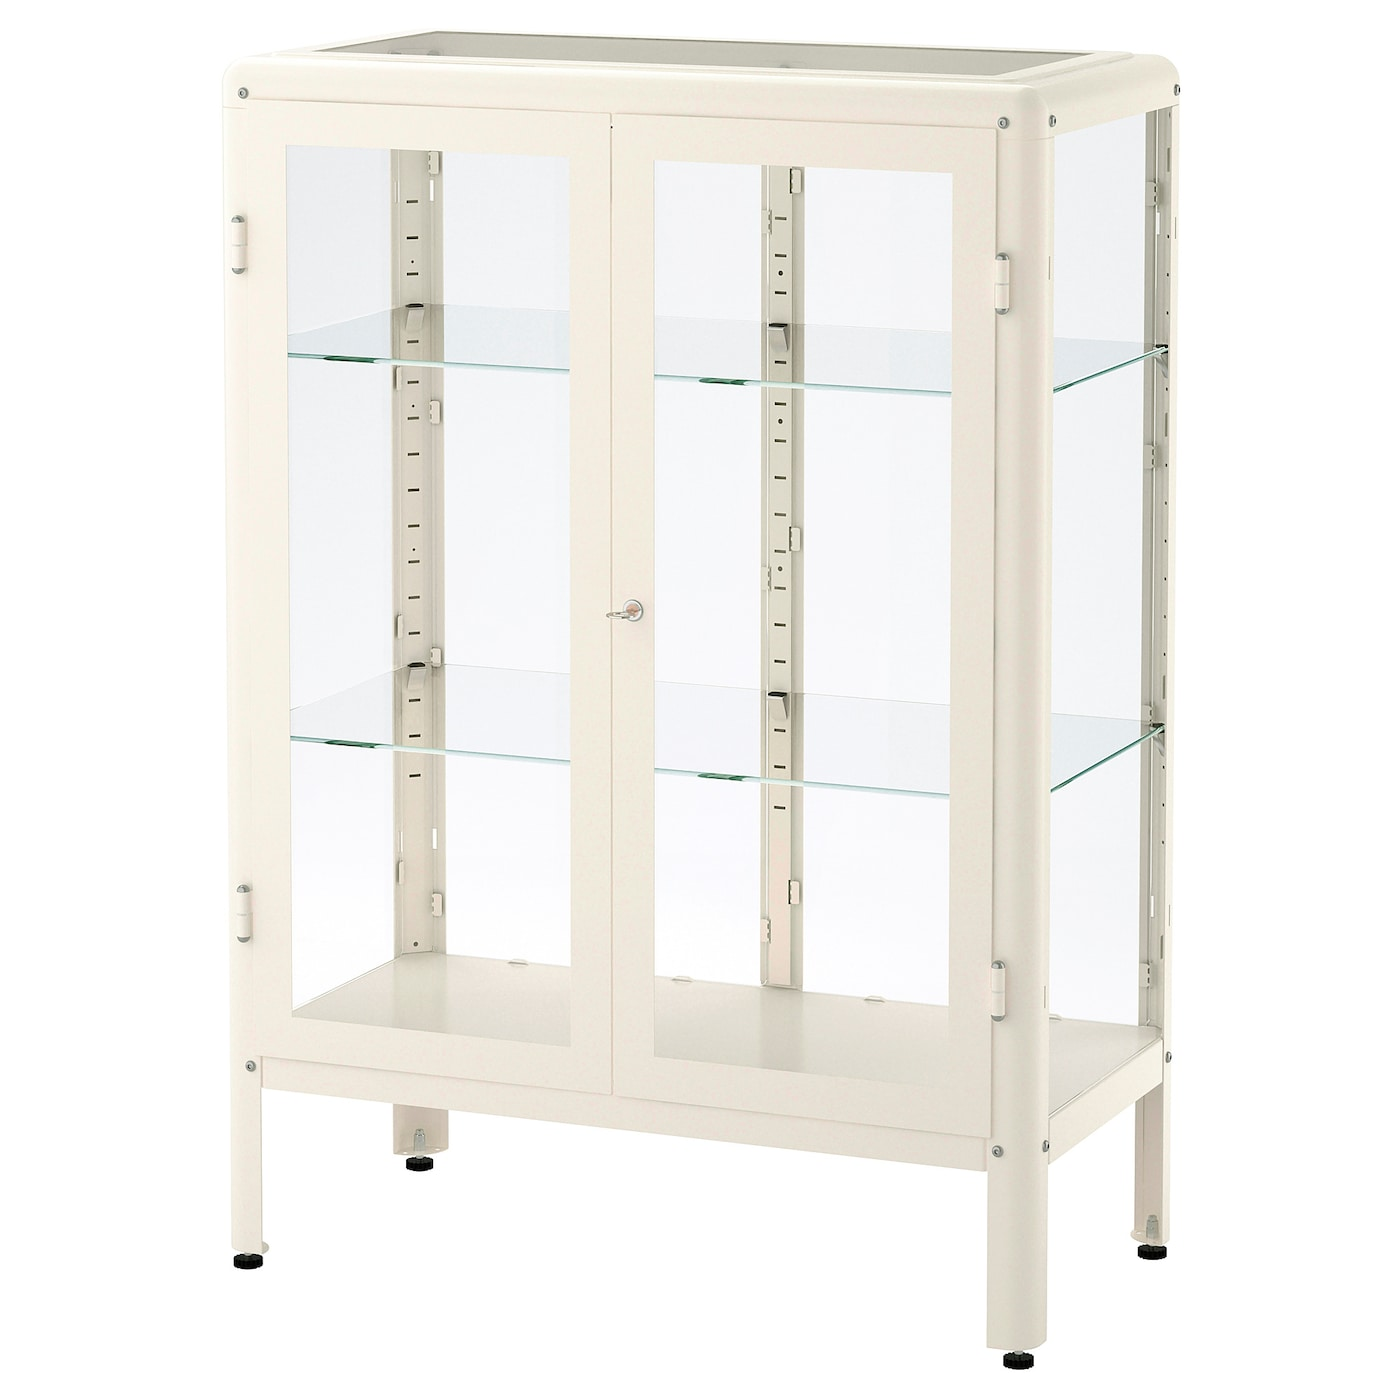 Ikea fabrikör glass door cabinet adjustable feet stands steady also on an uneven floor